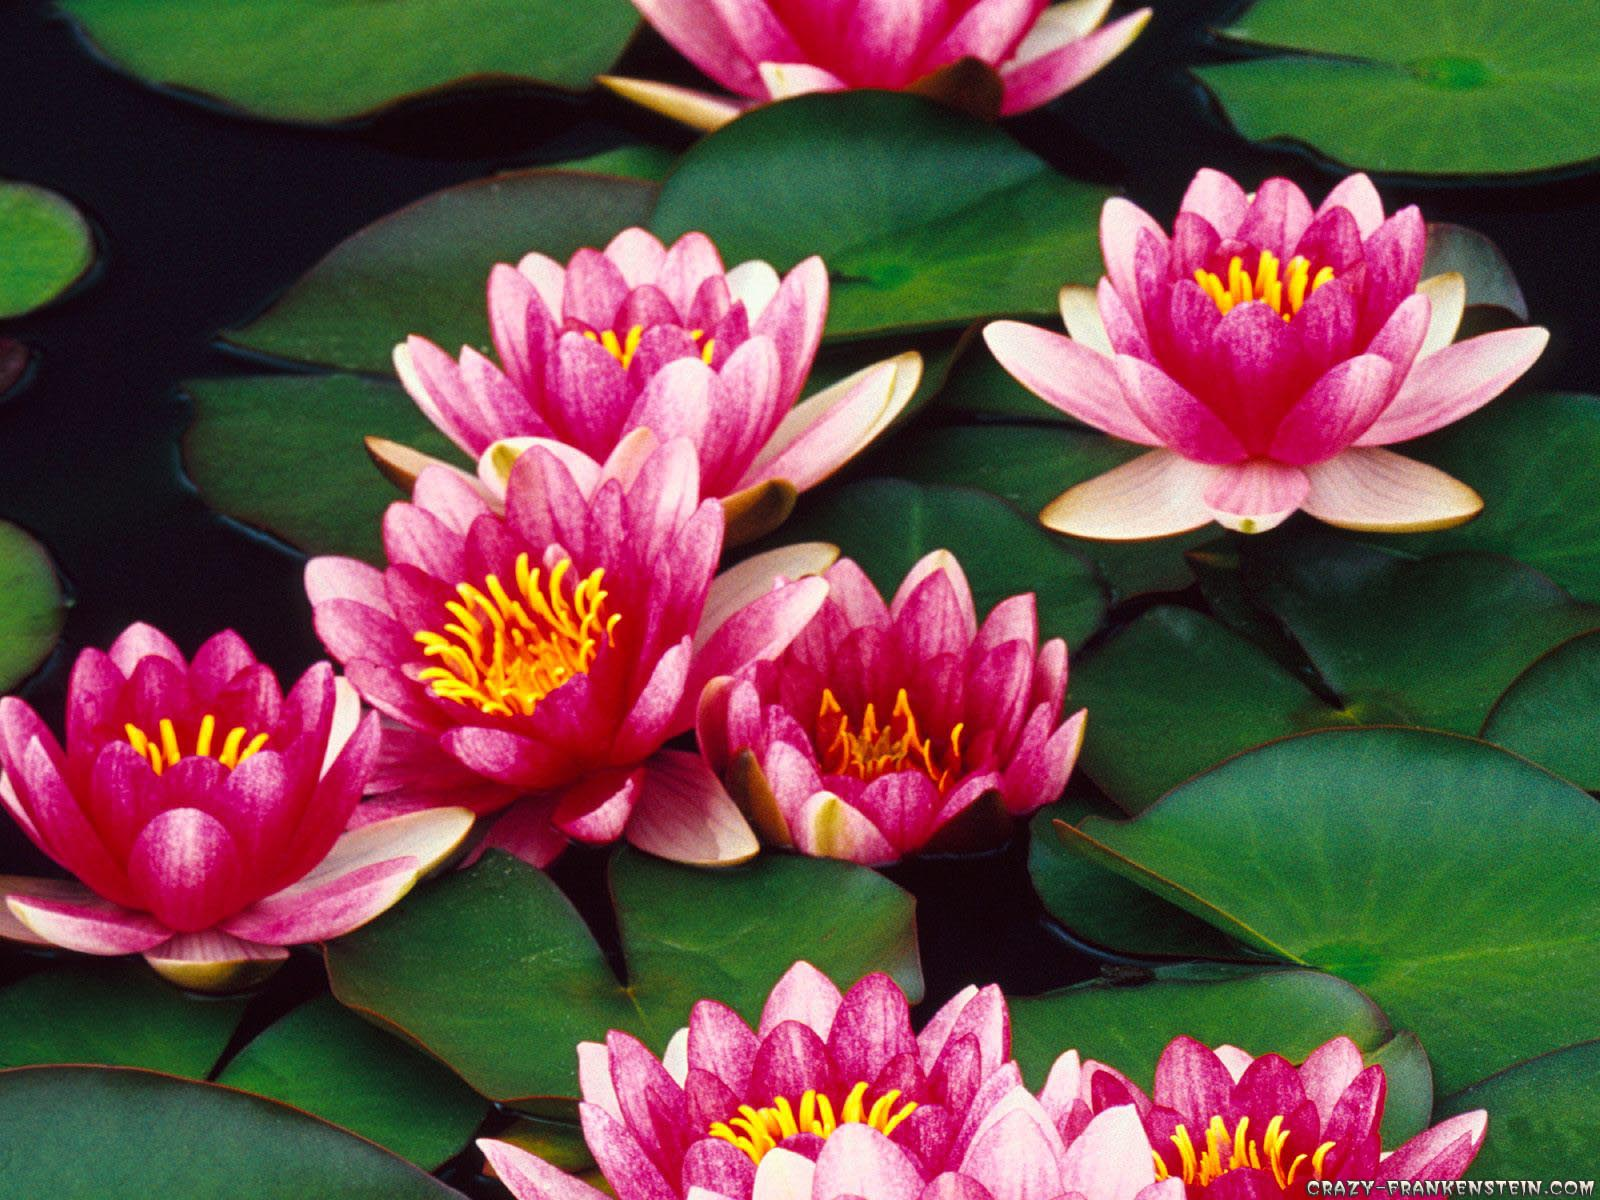 http://2.bp.blogspot.com/-IKjBd5MC-04/Tf97ffh176I/AAAAAAAAAUg/YAIdLm3mrDc/s1600/Water+Lilies+Flowers+Wallpapers+1.jpg